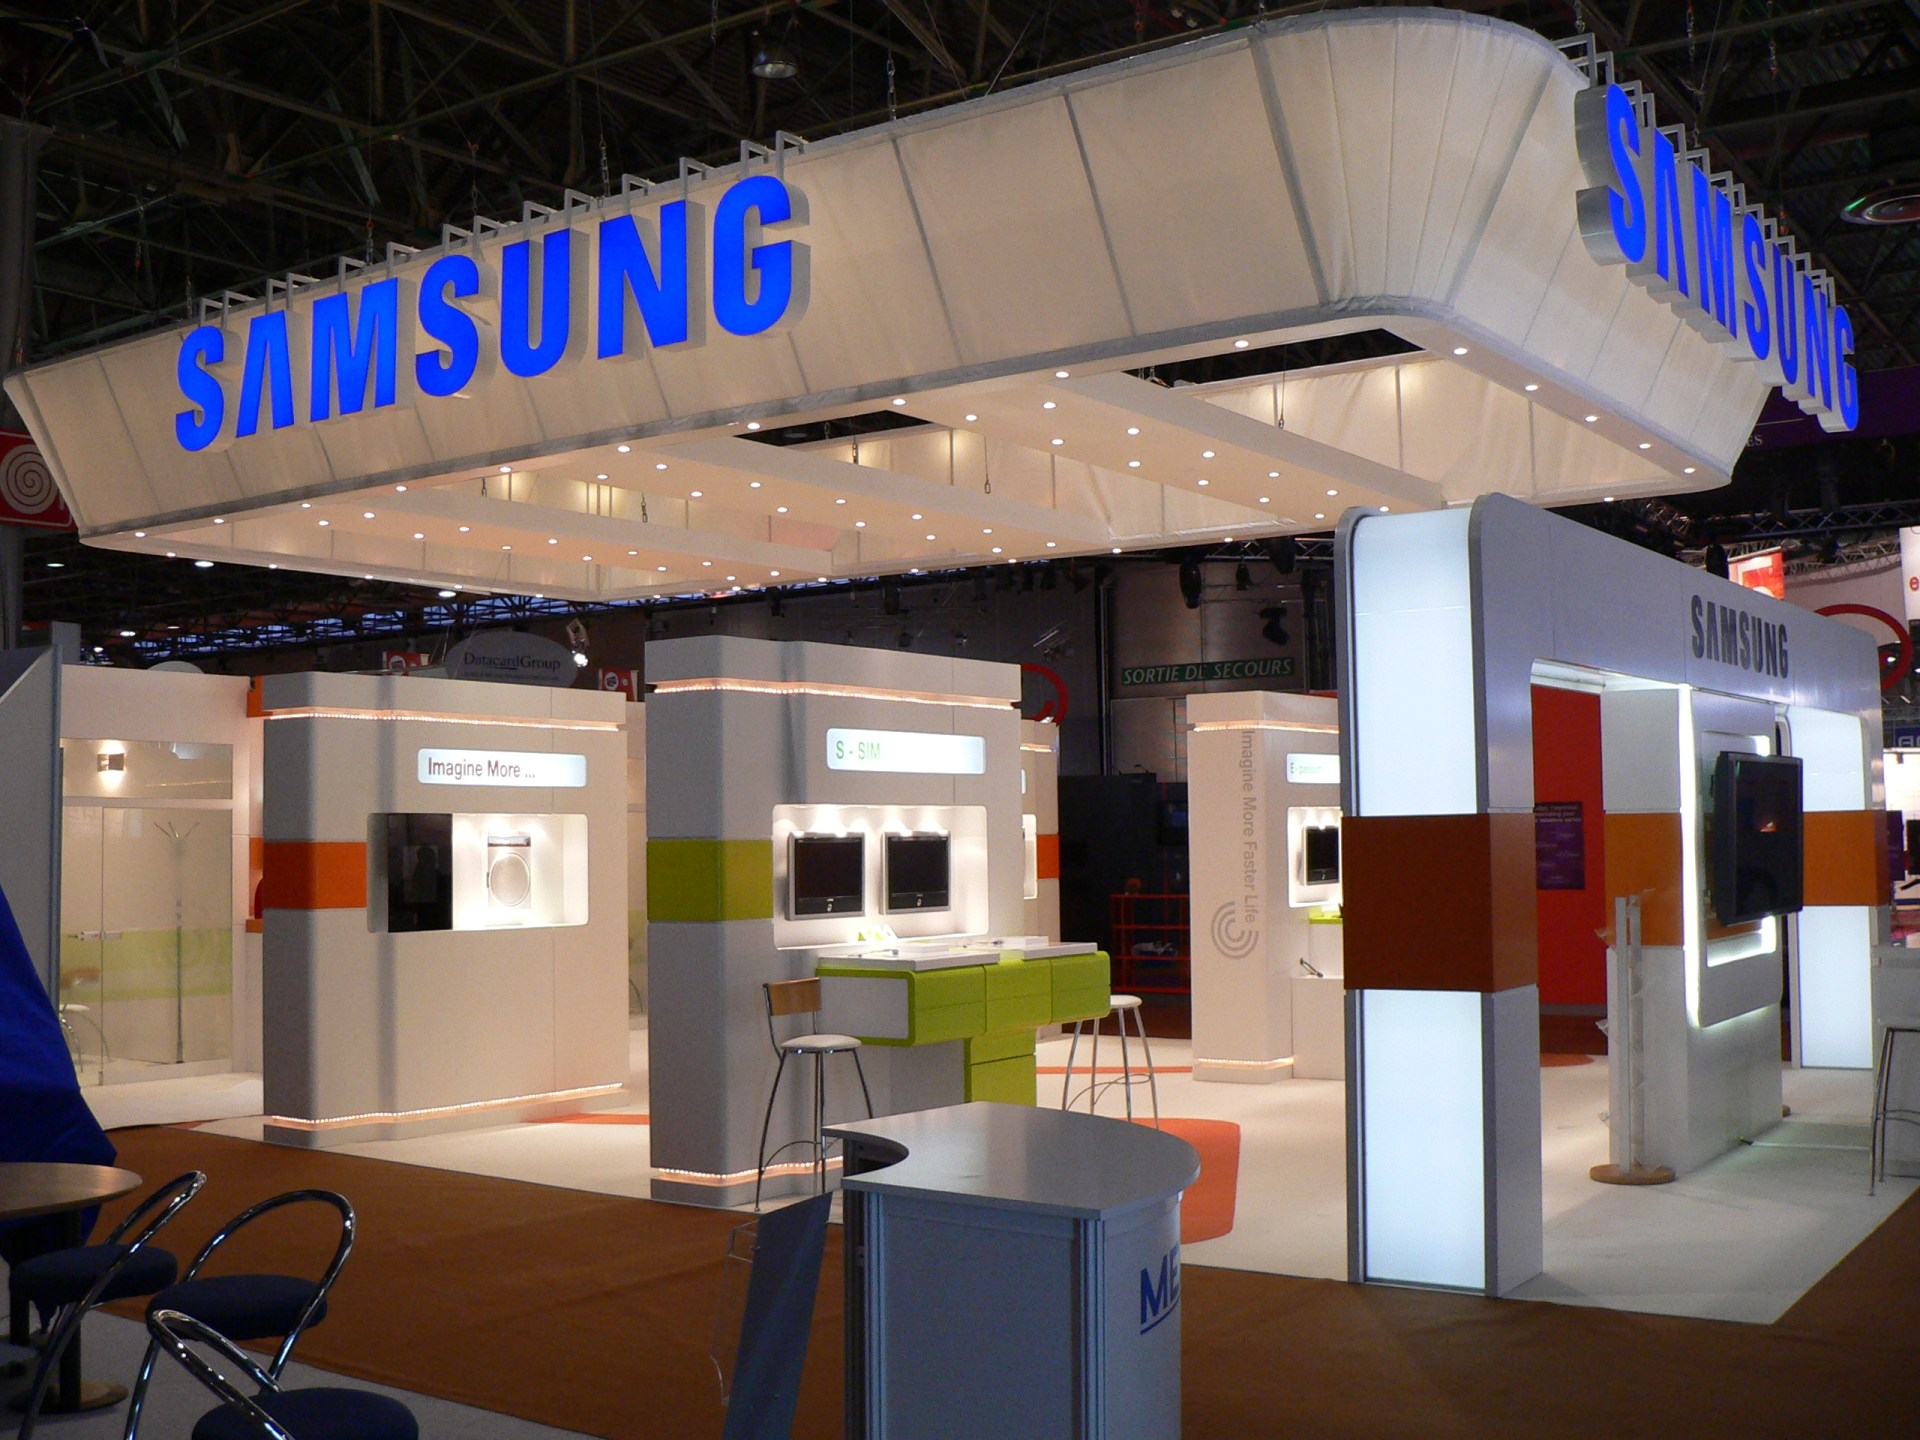 Exhibition Stand Design Decor : Furniture hire exhibition hire custom stands audio visual hire